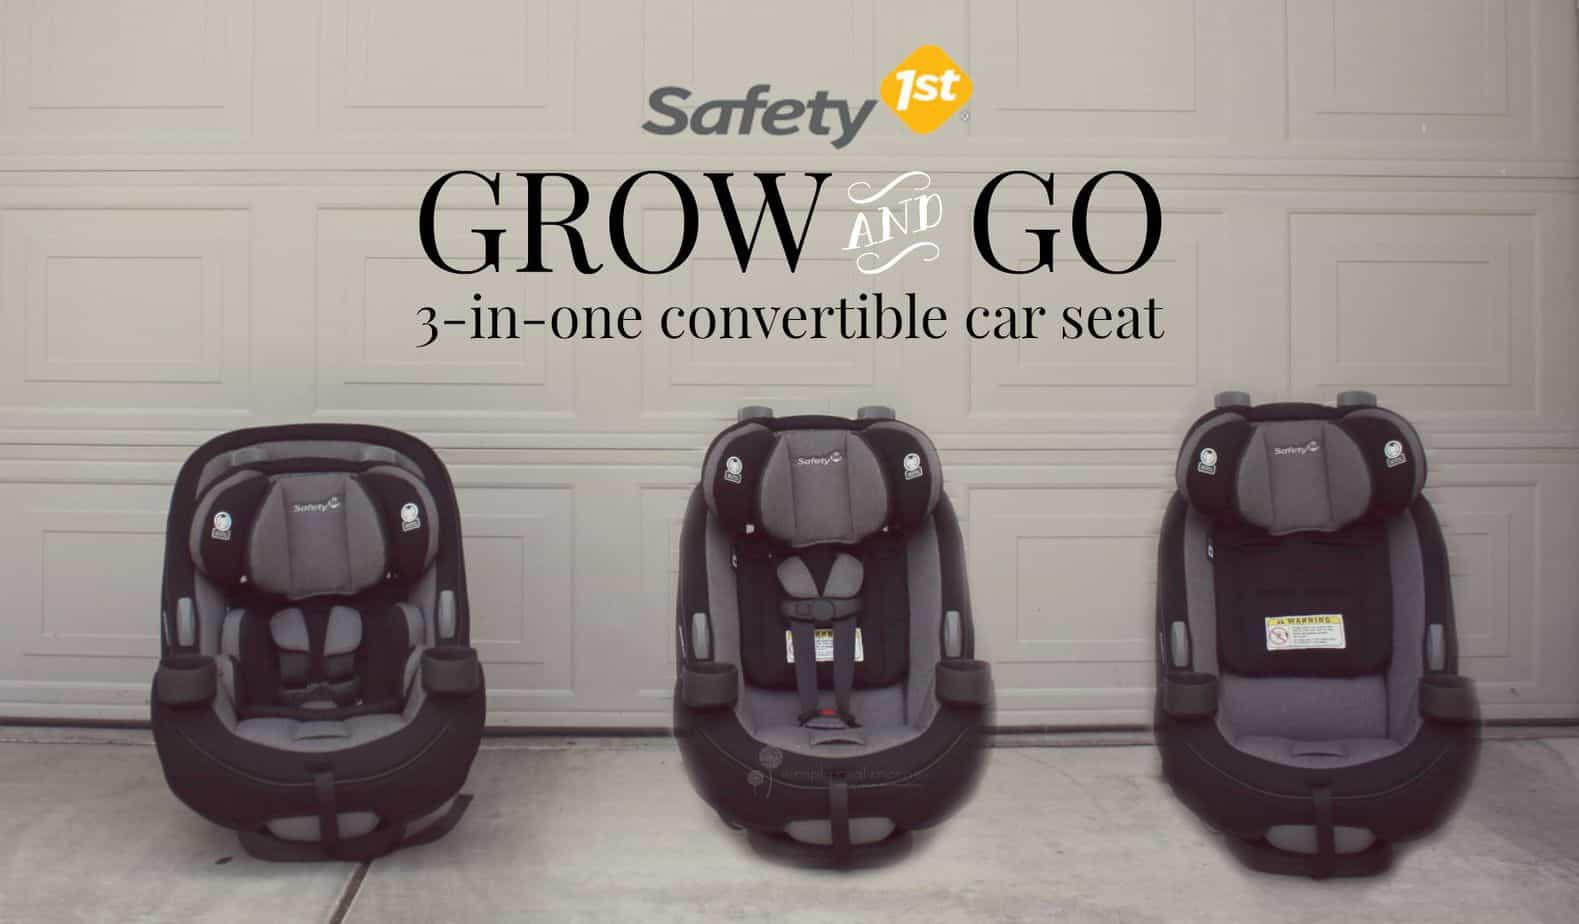 Travel Safety Tips With Safety 1st\'s New Grow And Go Car Seat ...